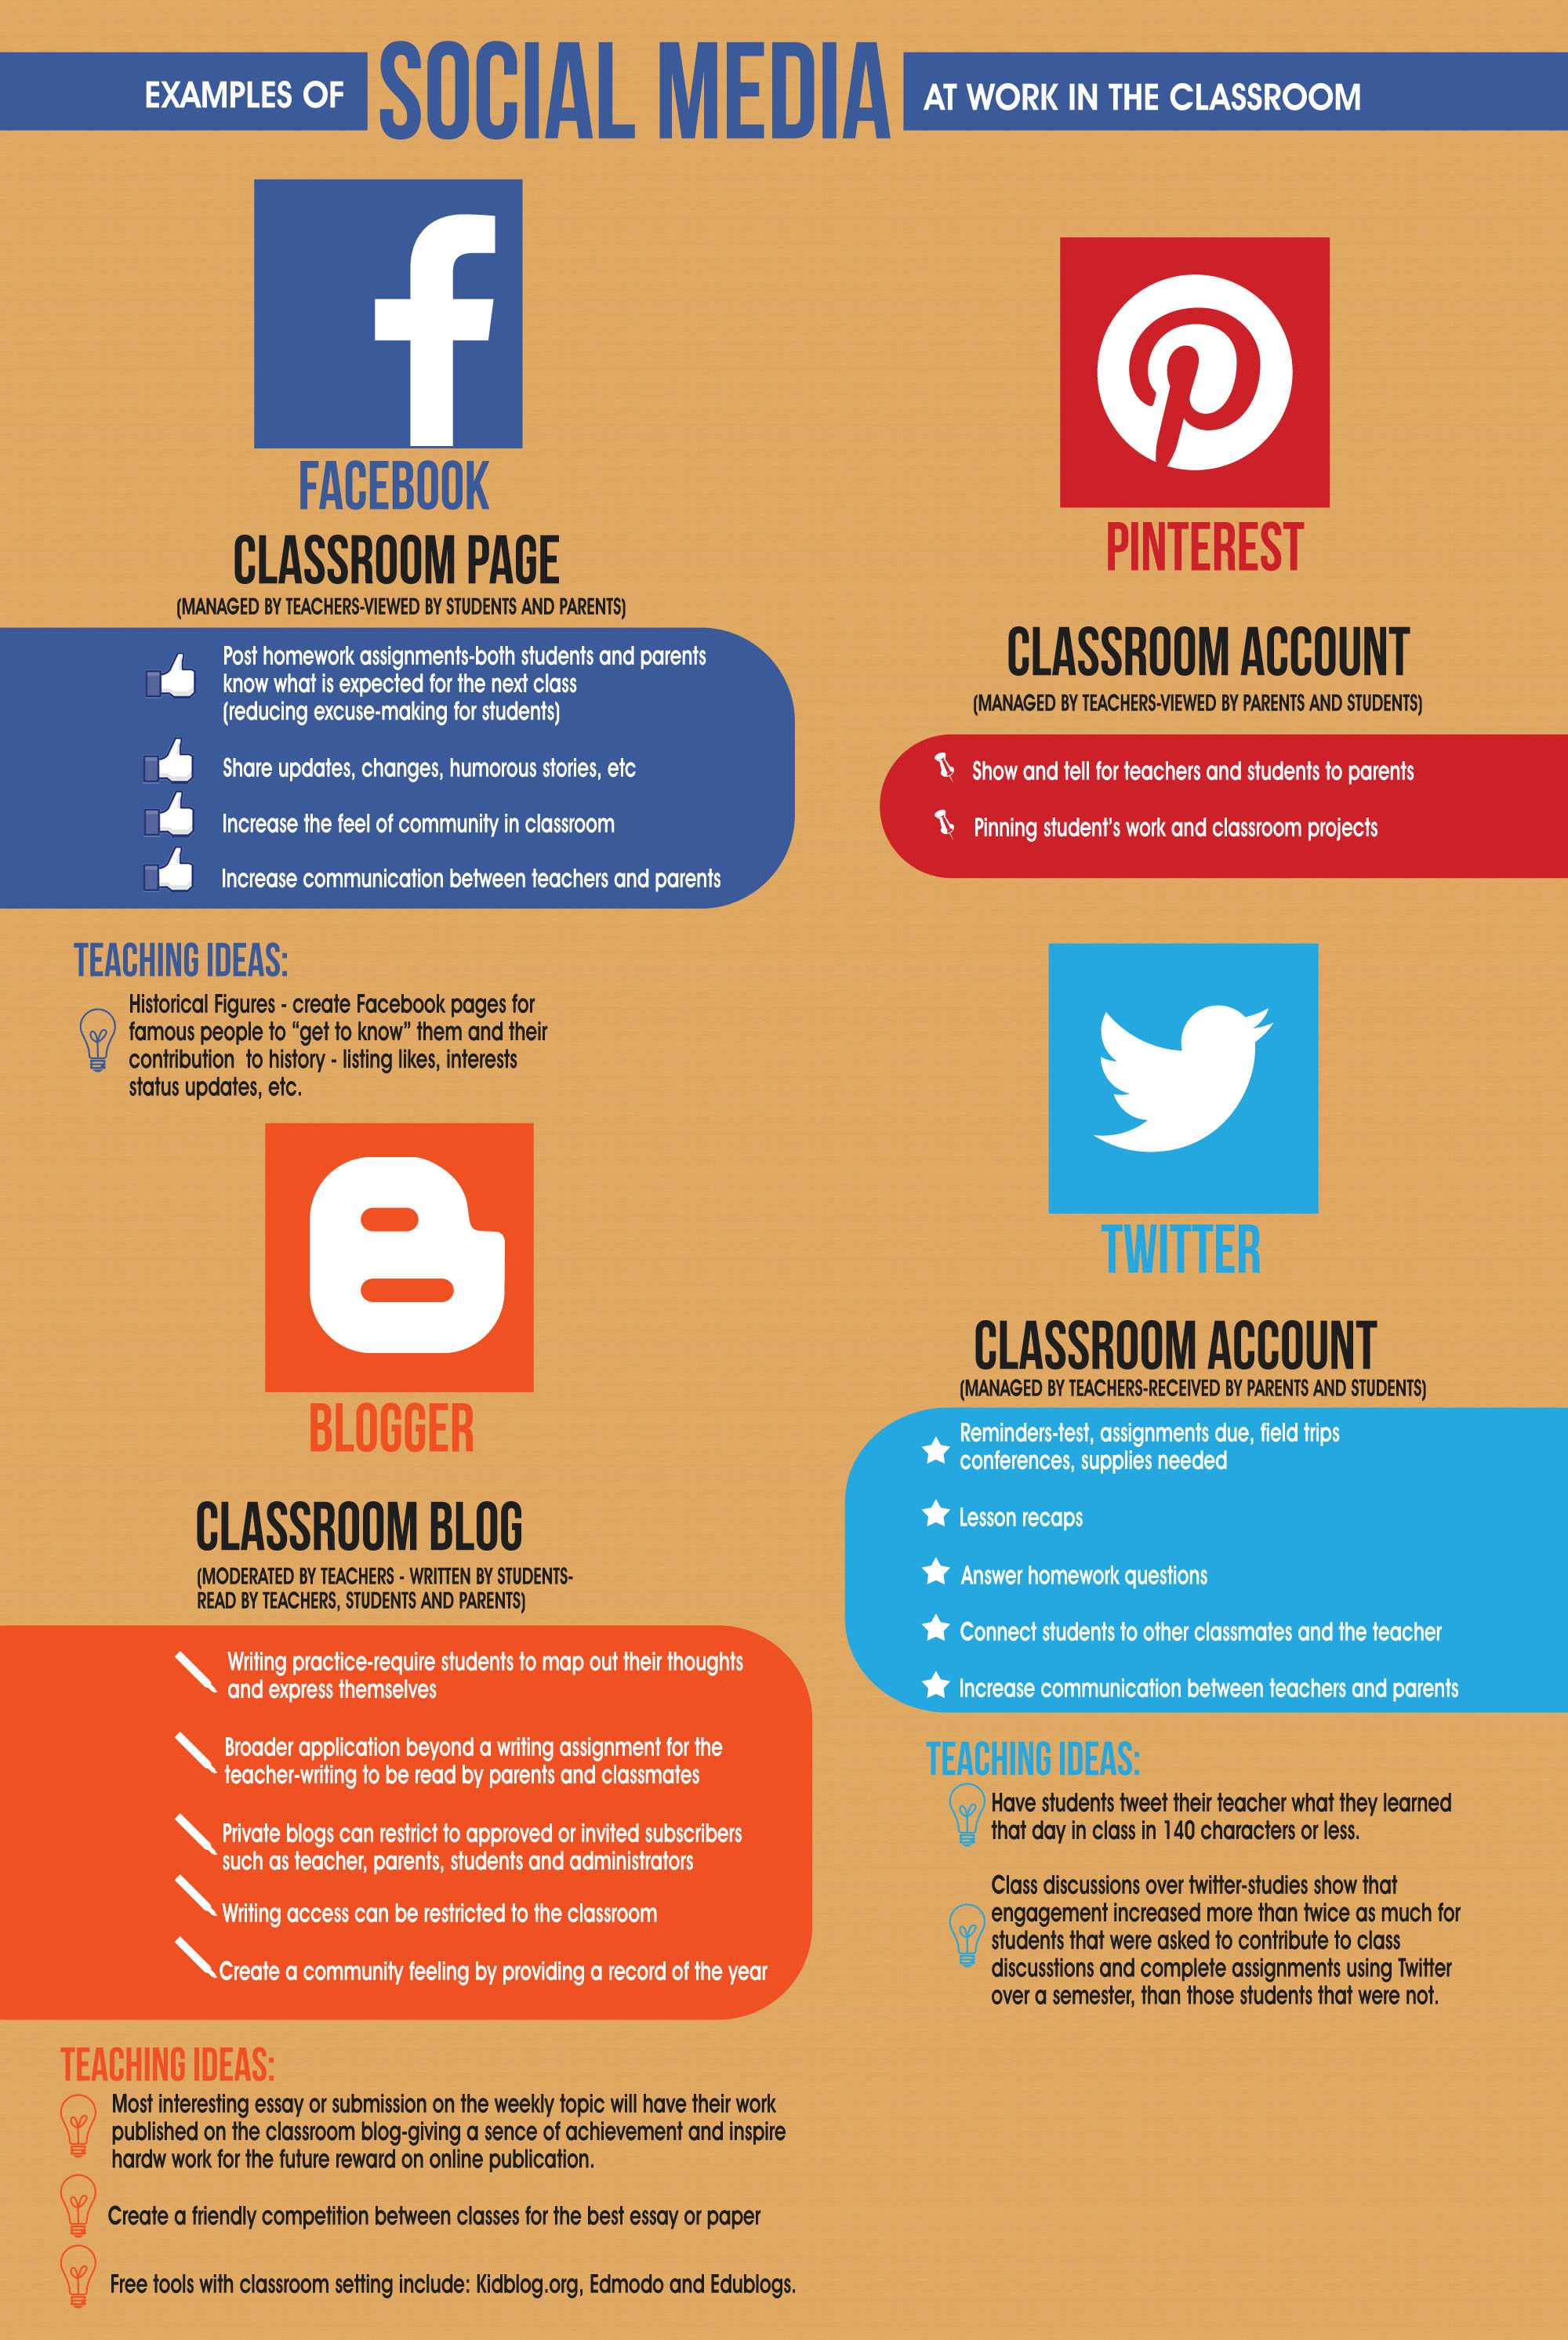 examples of social media in the classroom visually